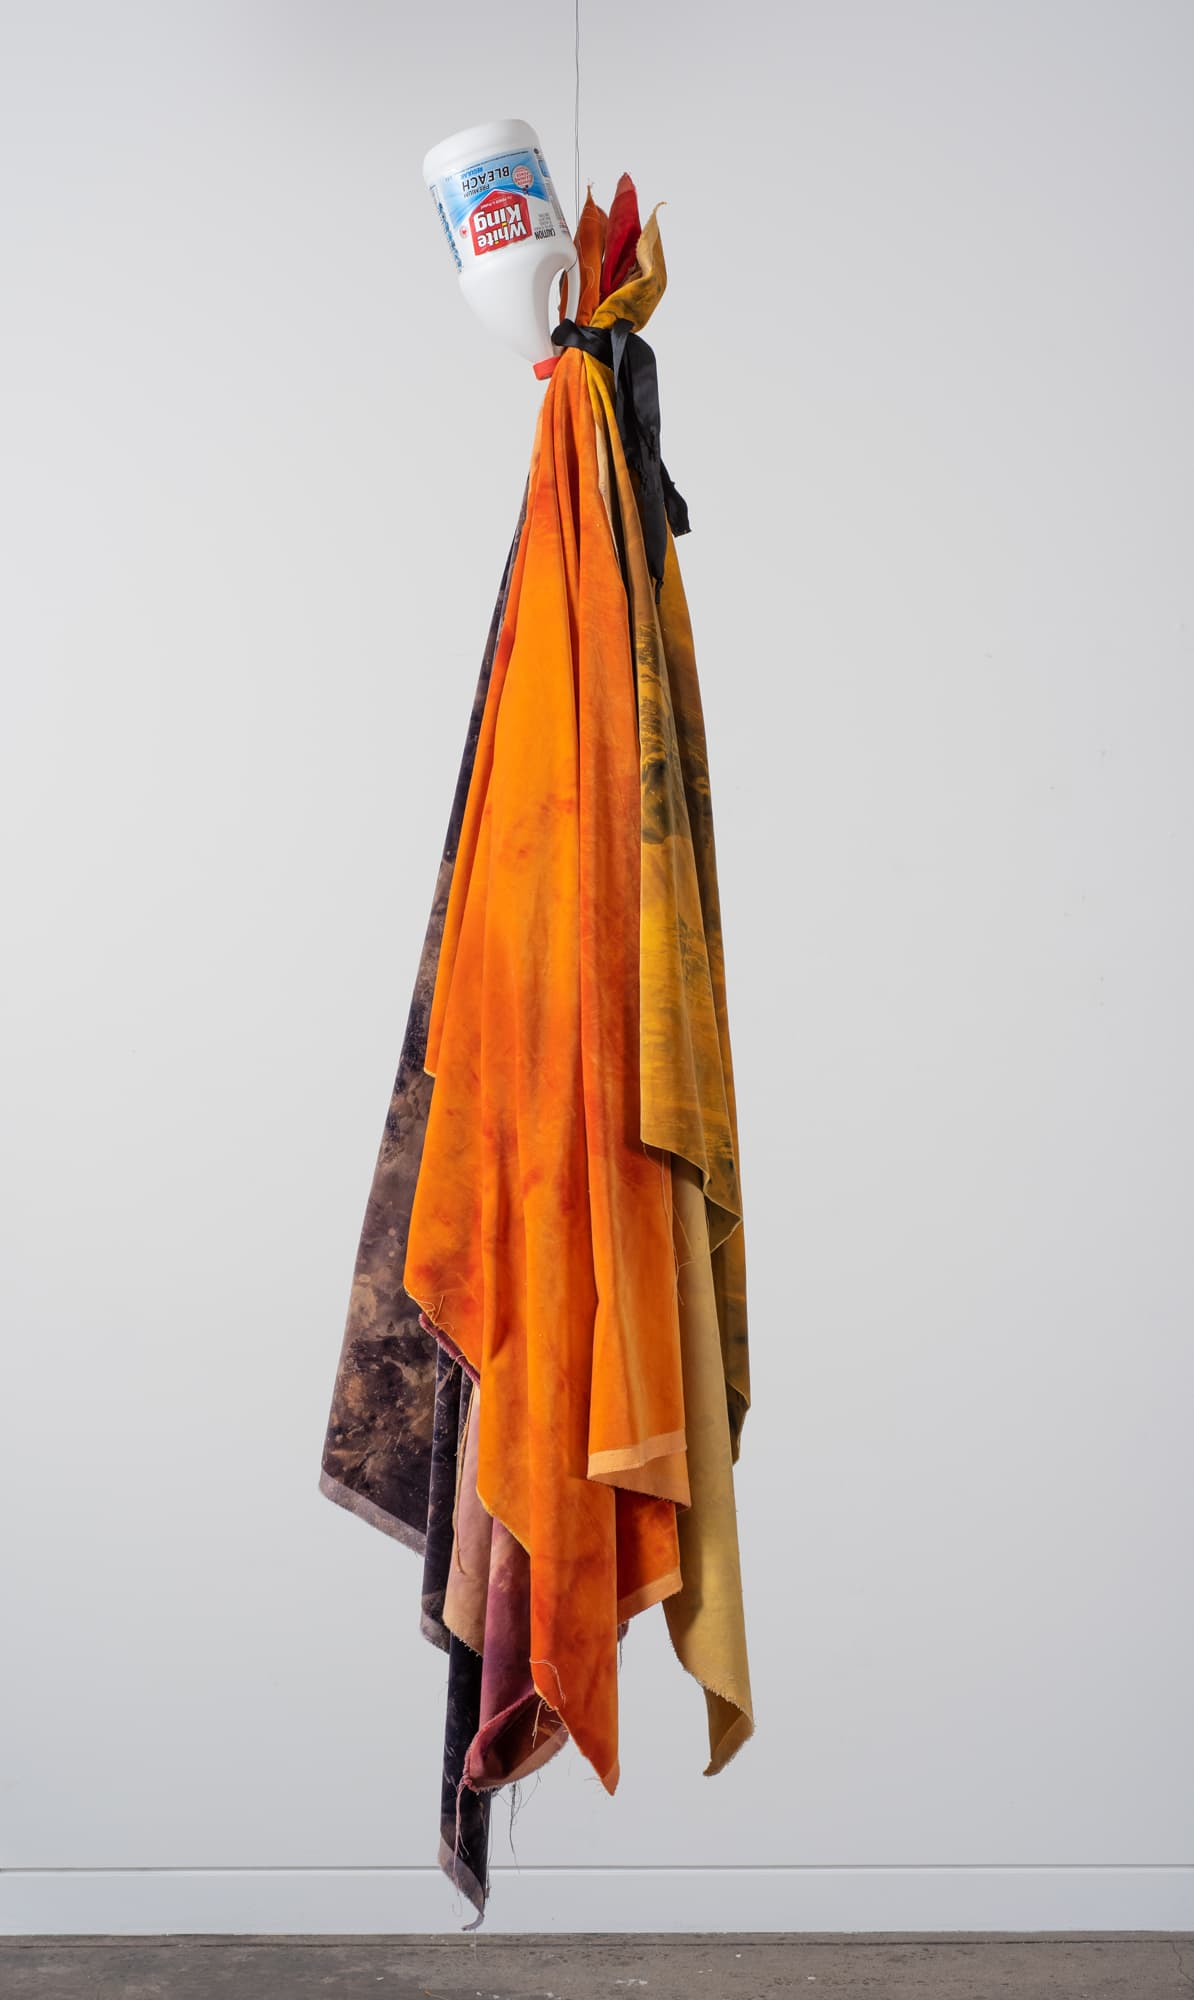 Clinton Naina, Passive Aggressive Power - Beautiful Rags, 2019, dimensions variable